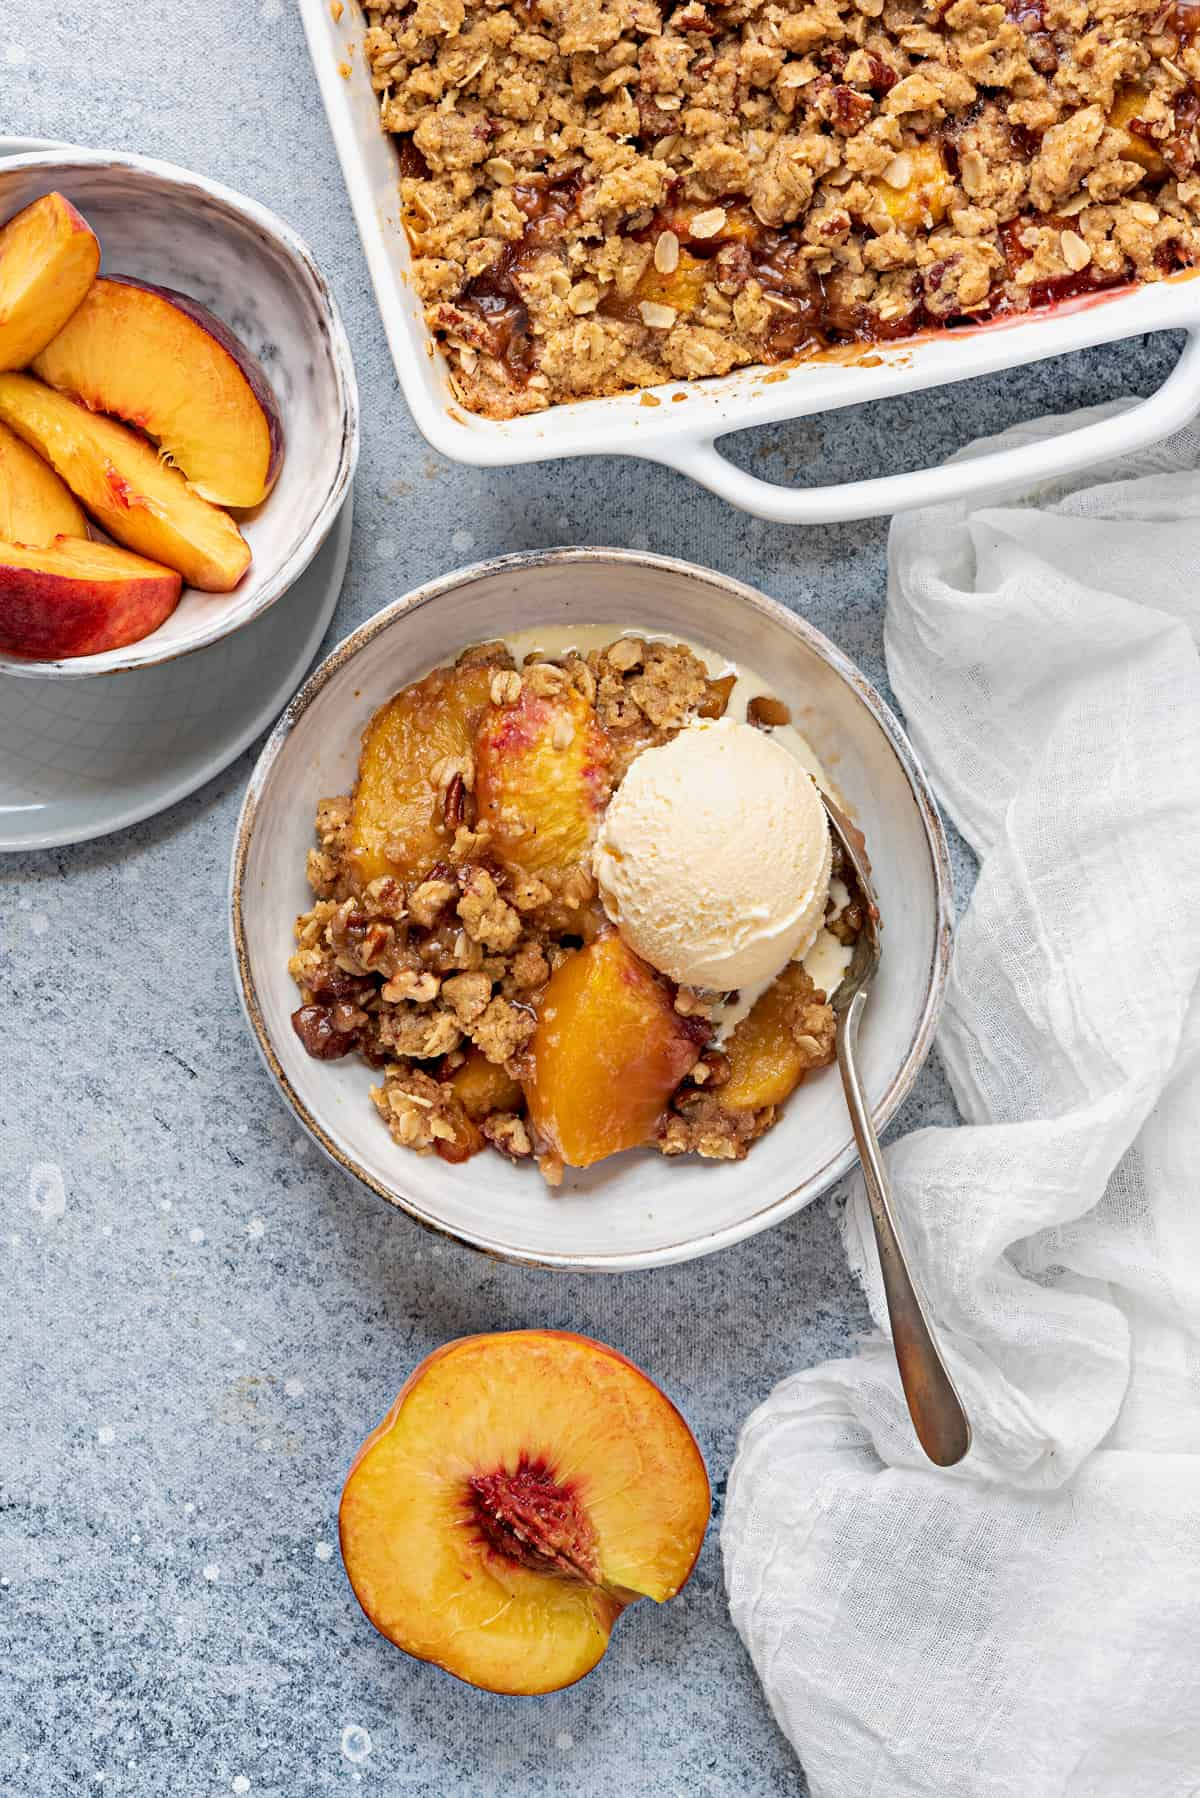 overhead shot of casserole dish, and a serving bowl of peach crisp with a scoop of ice cream